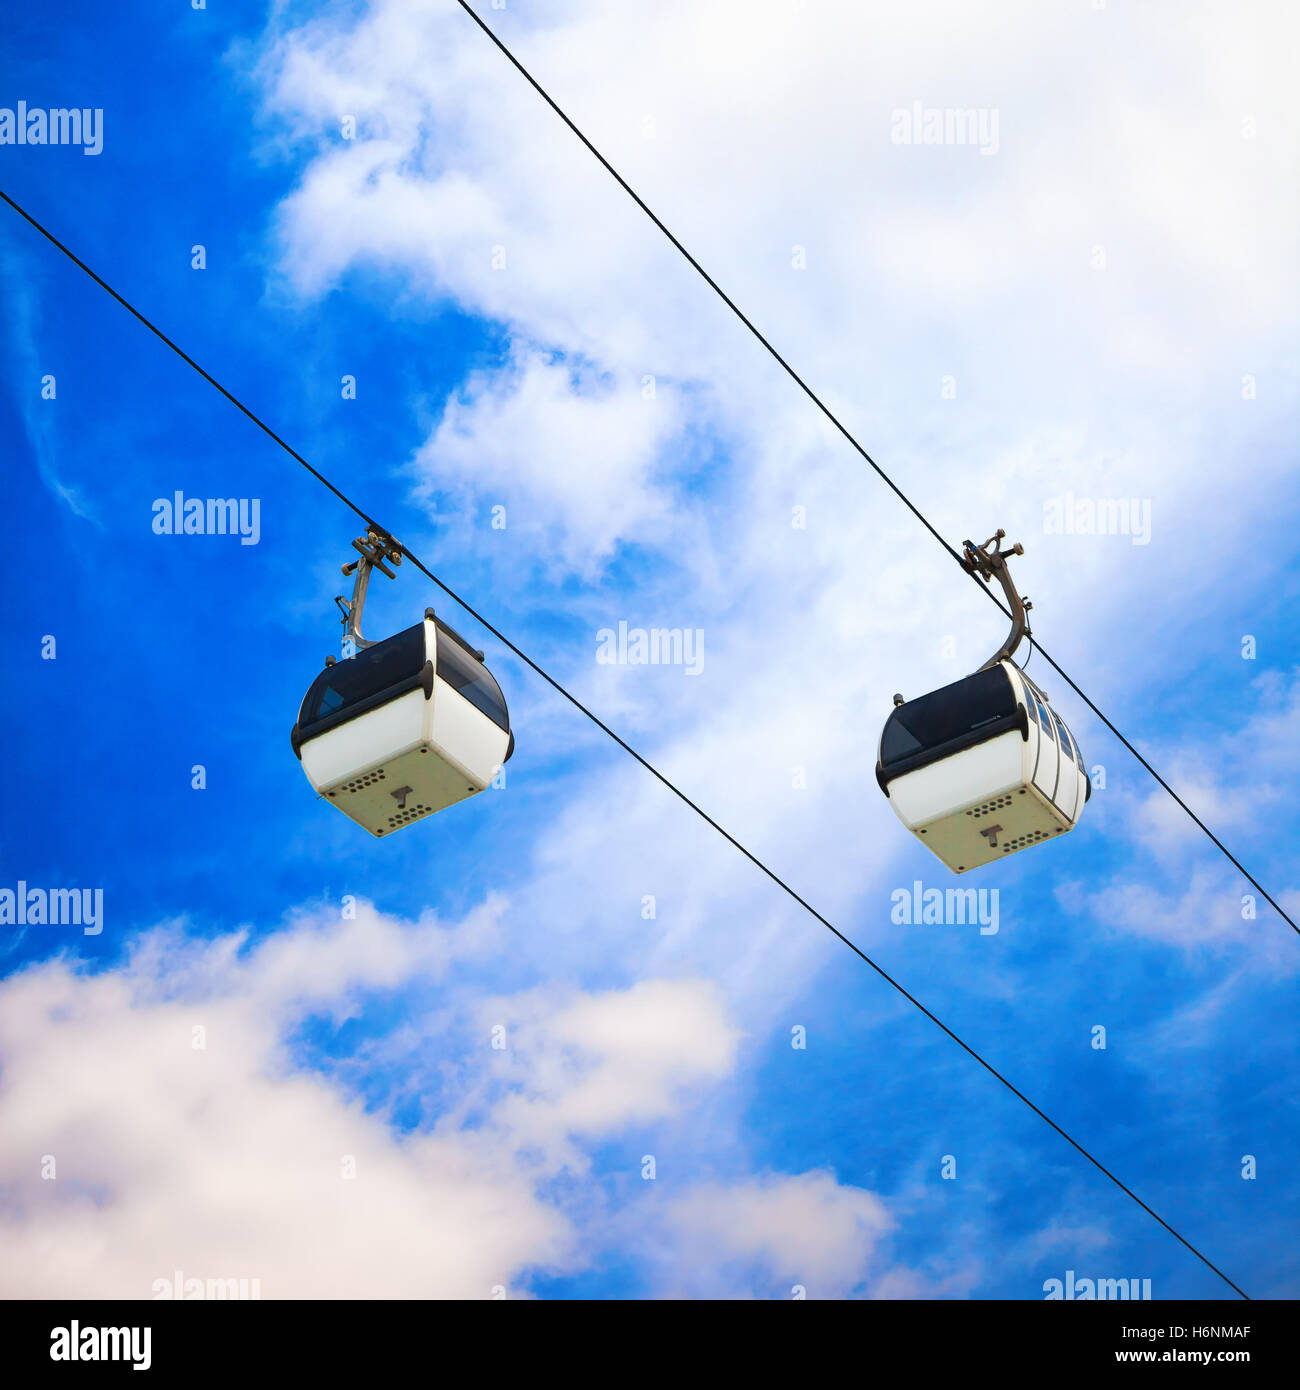 A cableway with two cable car on a partly cloudy blue sky background - Stock Image